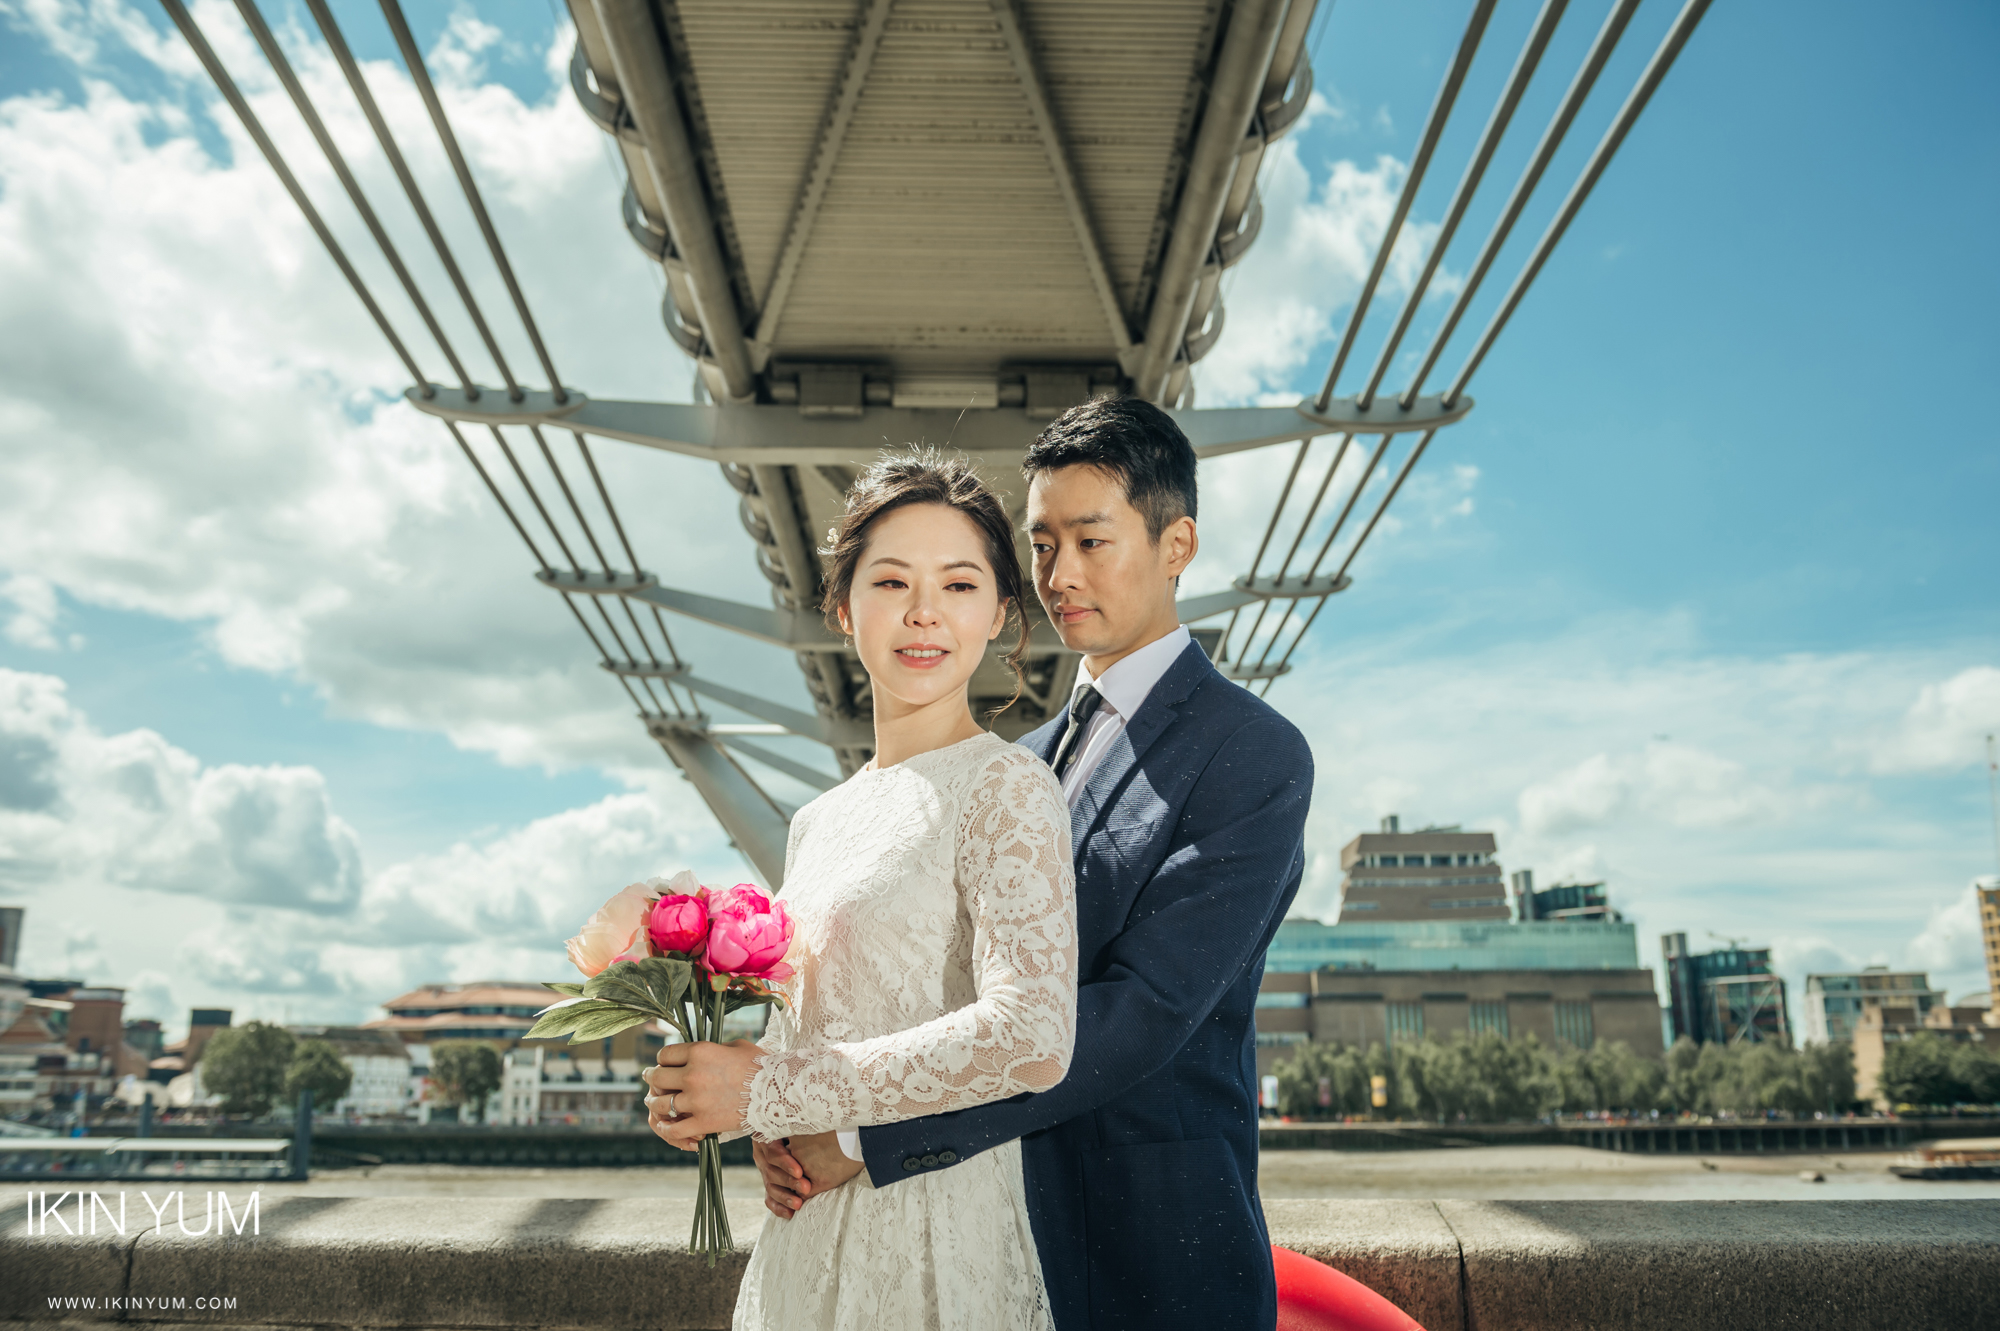 London Pre-Wedding Shoot - See more